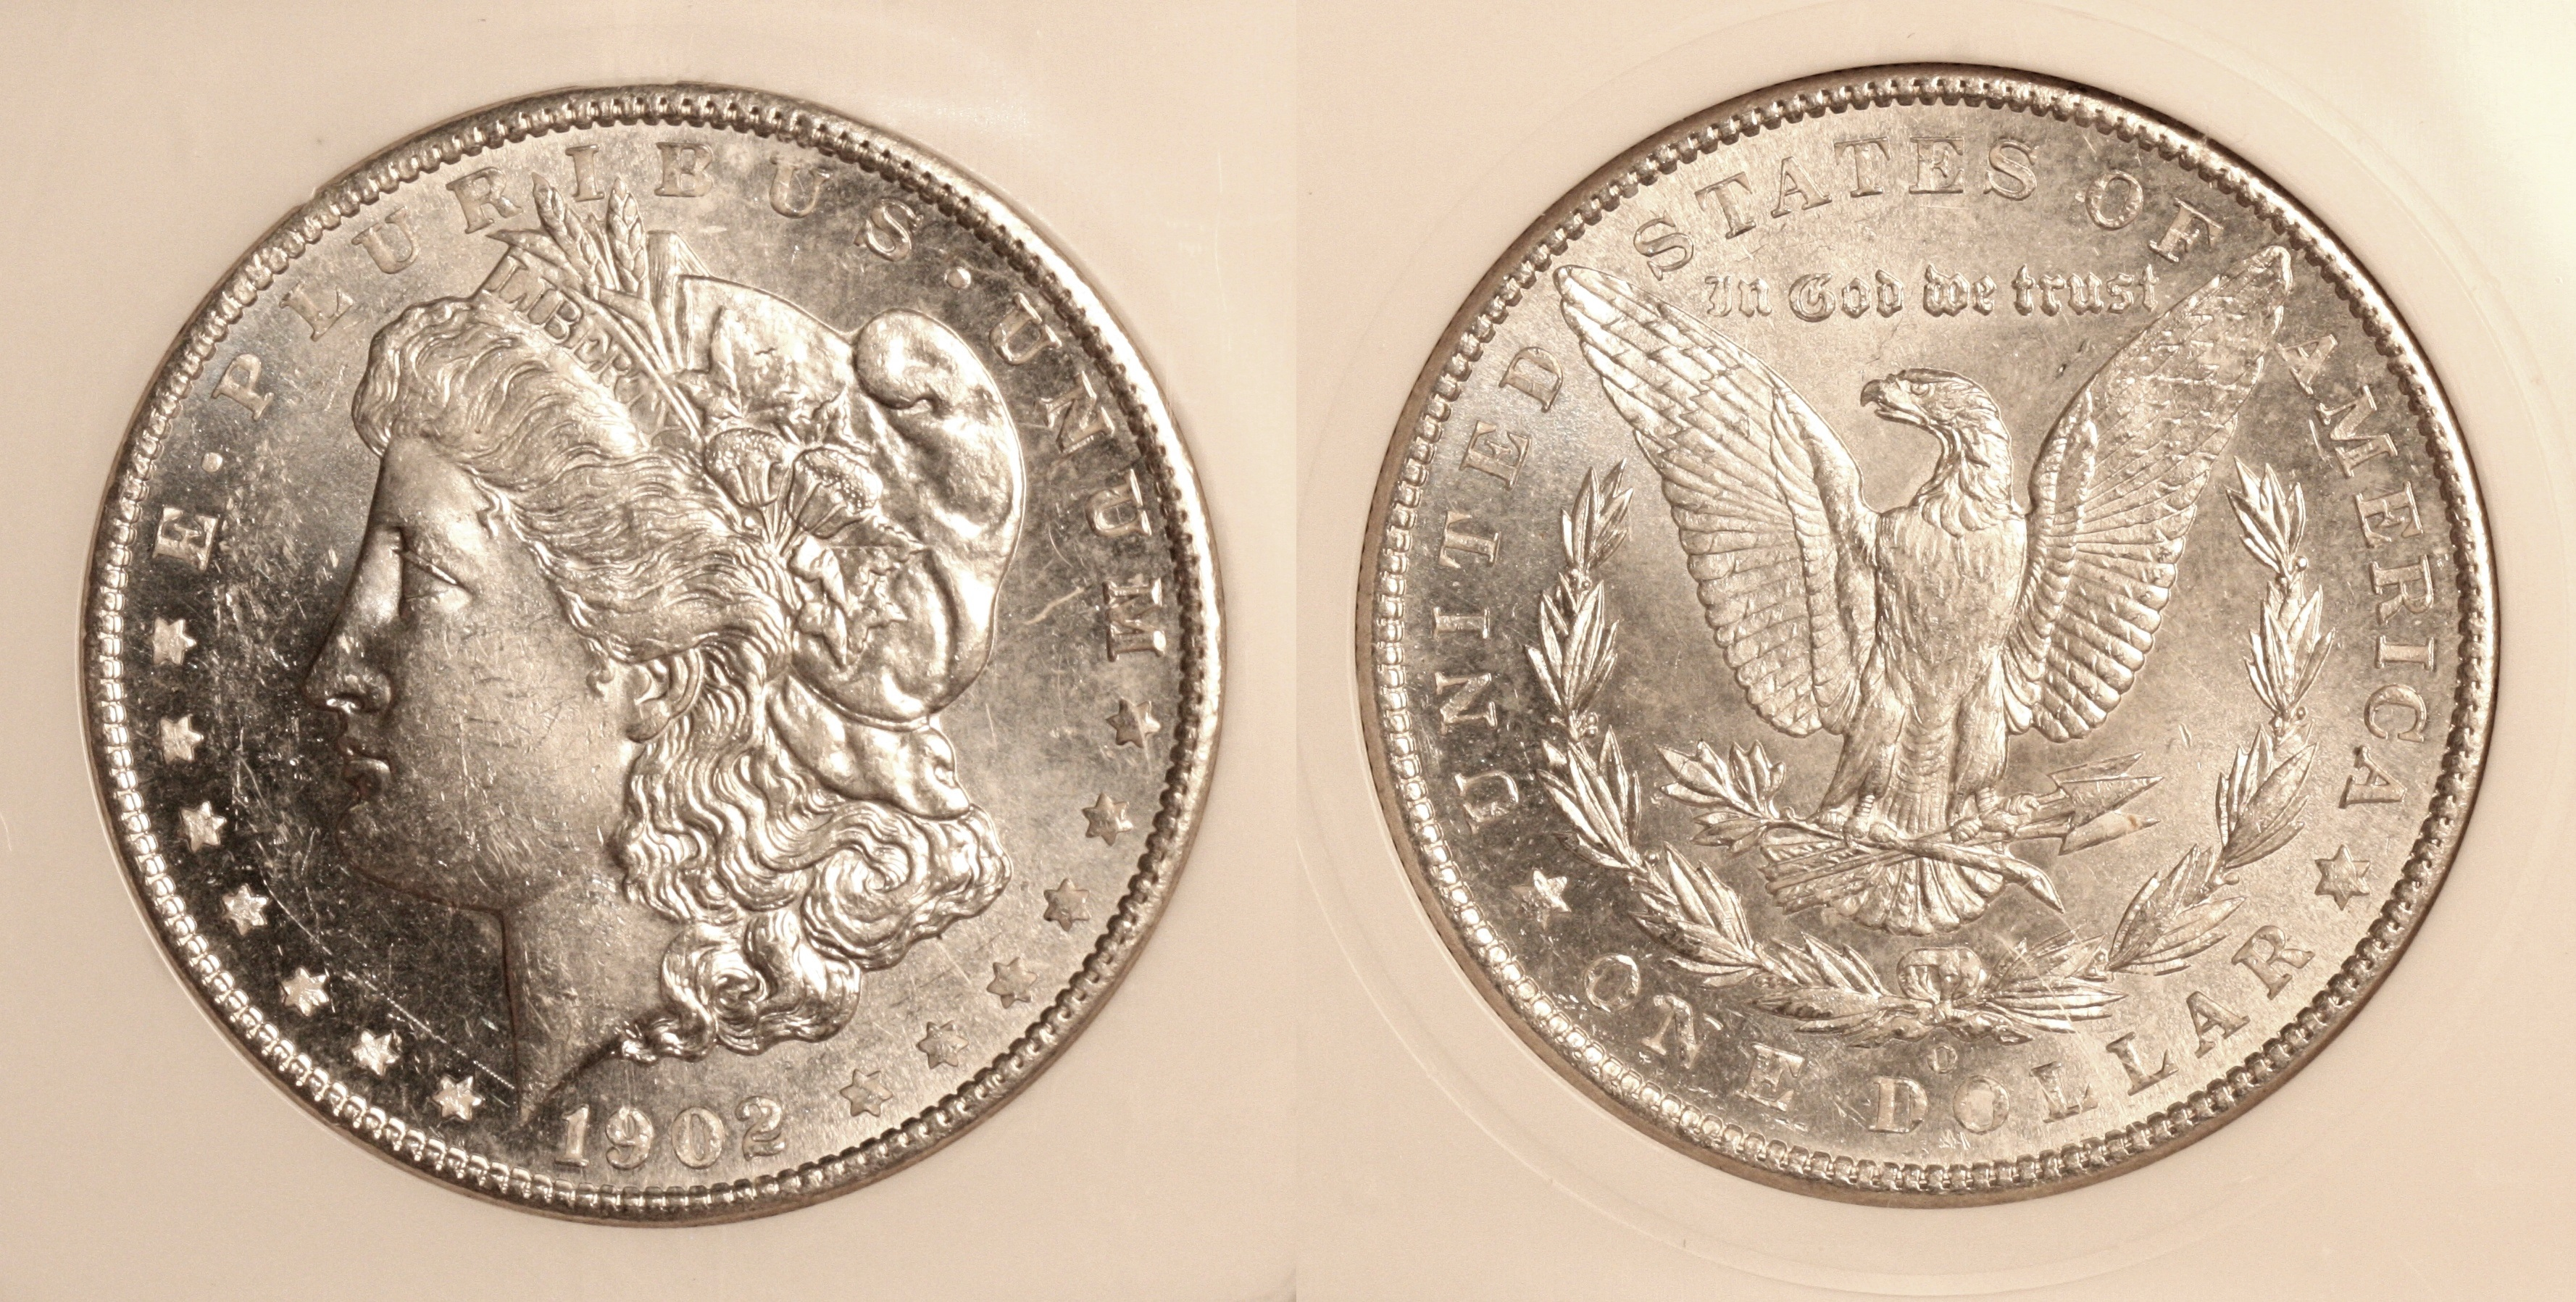 1902-O Morgan Silver Dollar in PCI MS-63 DMPL camera